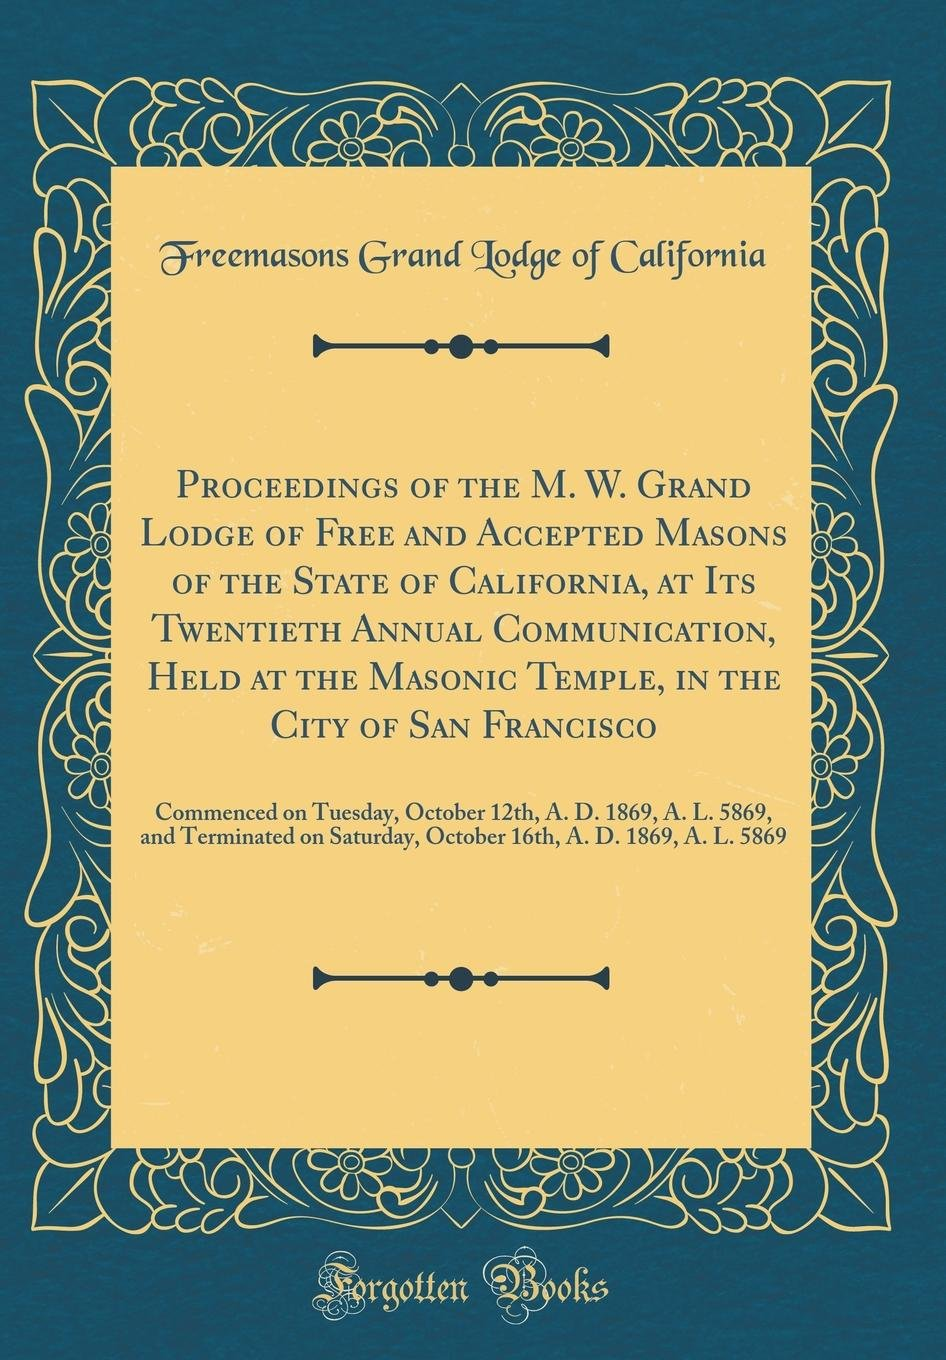 Read Online Proceedings of the M. W. Grand Lodge of Free and Accepted Masons of the State of California, at Its Twentieth Annual Communication, Held at the ... October 12th, A. D. 1869, A. L. 5869, and T pdf